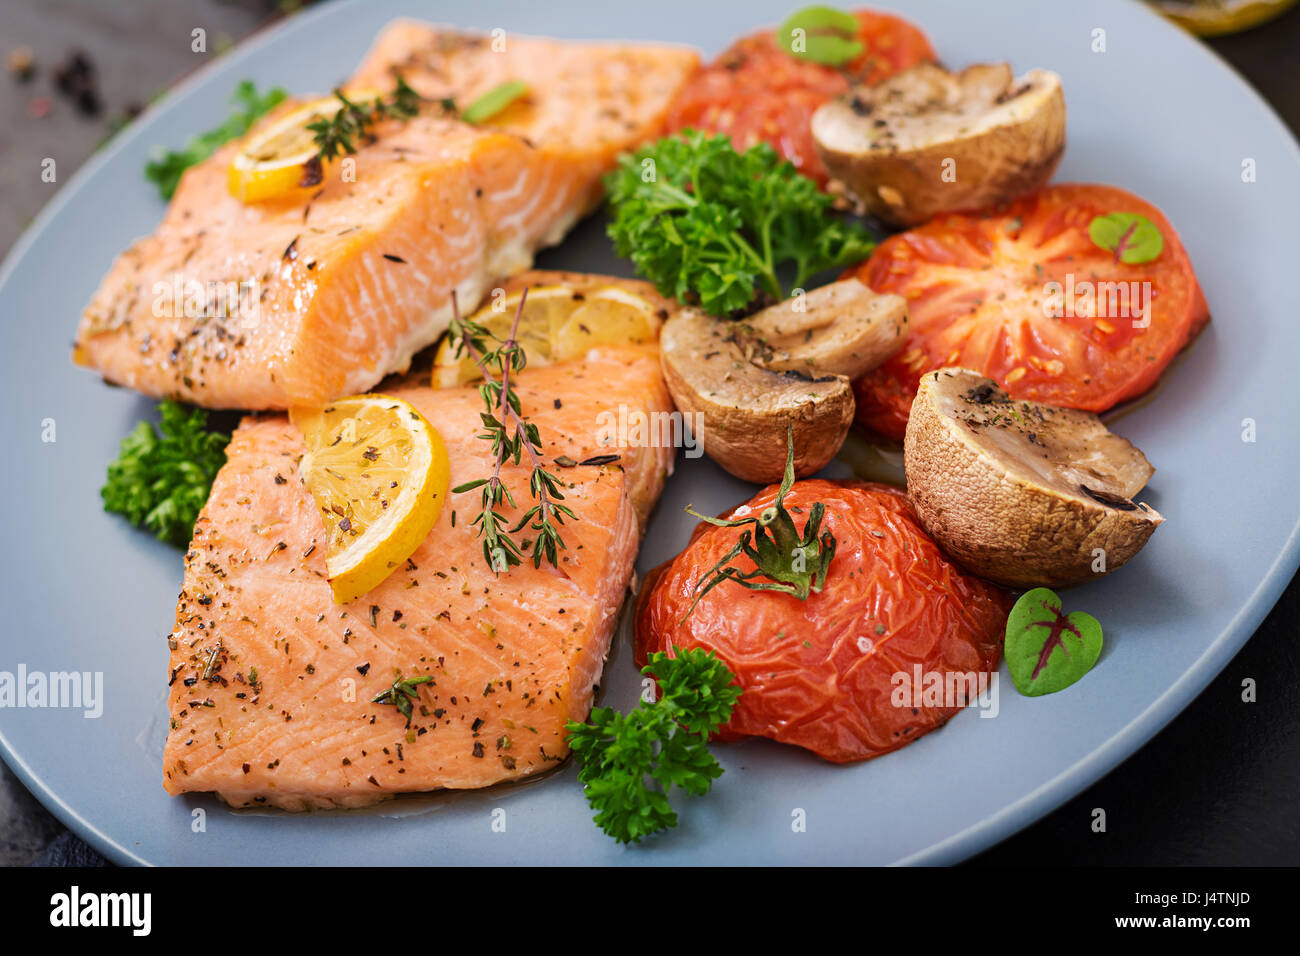 Baked Salmon Fish Fillet With Tomatoes Mushrooms And Spices Diet